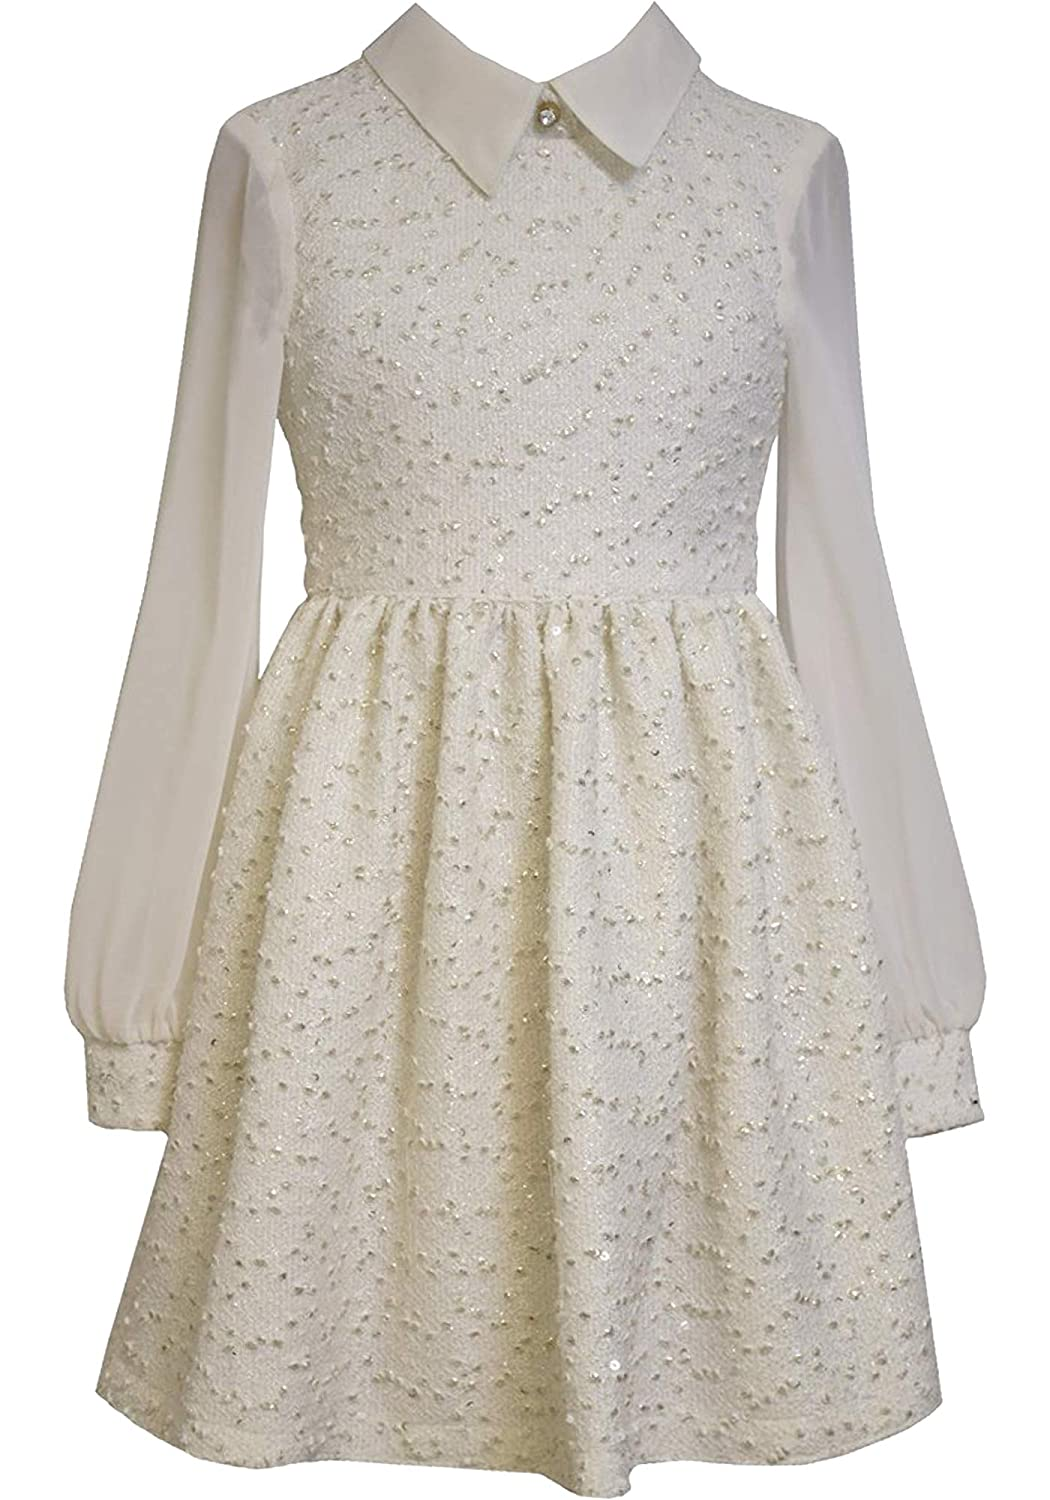 Kids 1950s Clothing & Costumes: Girls, Boys, Toddlers Little Girls 2T-6X Ivory/Gold Foil Knit Boucle Chiffon Sleeves Dress $42.99 AT vintagedancer.com